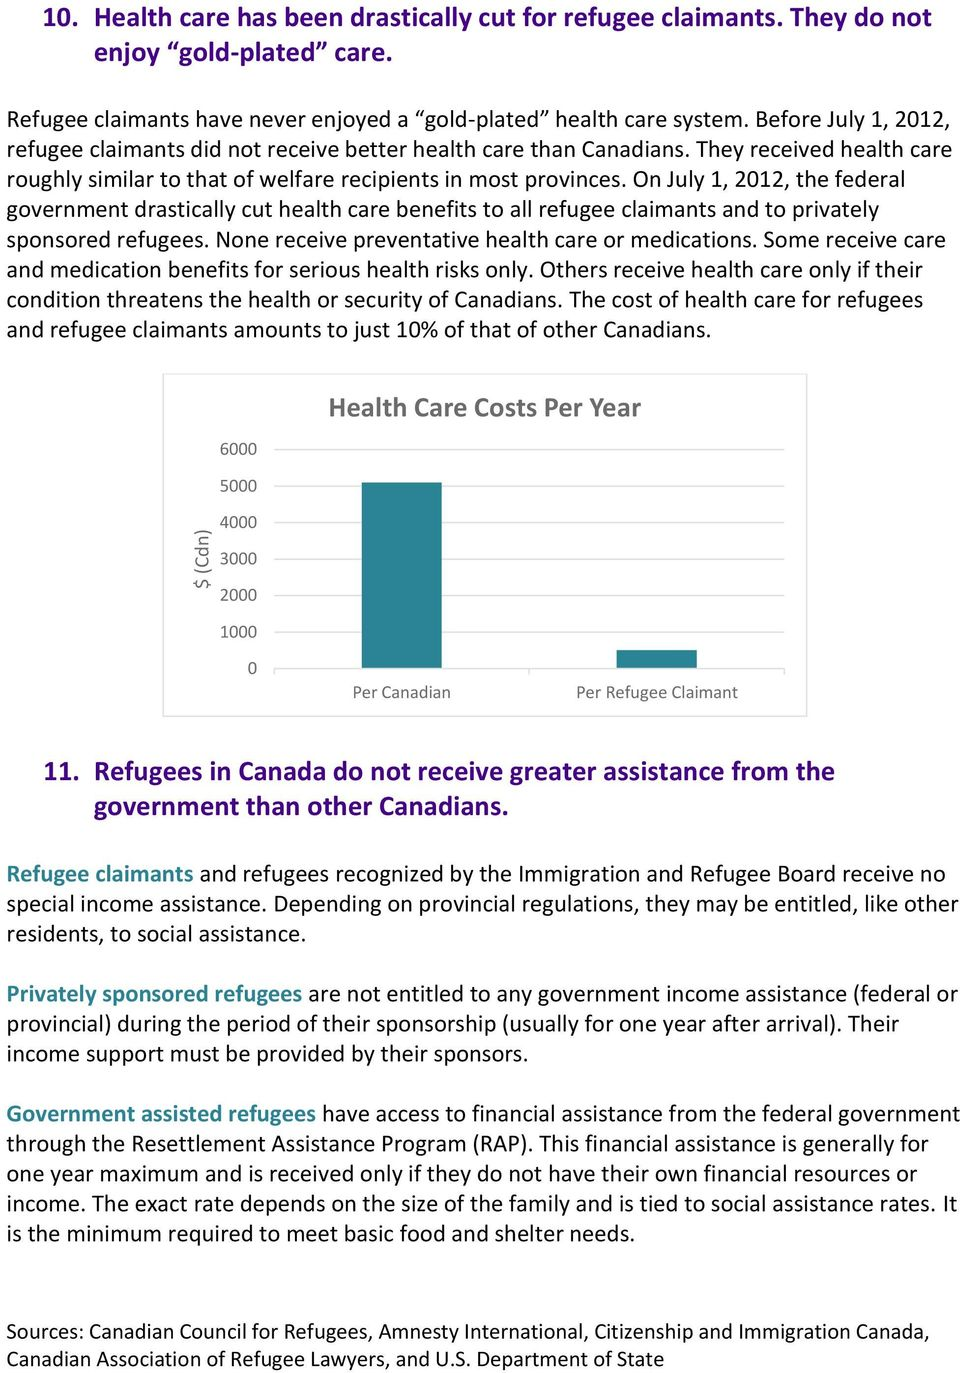 On July 1, 2012, the federal government drastically cut health care benefits to all refugee claimants and to privately sponsored refugees. None receive preventative health care or medications.